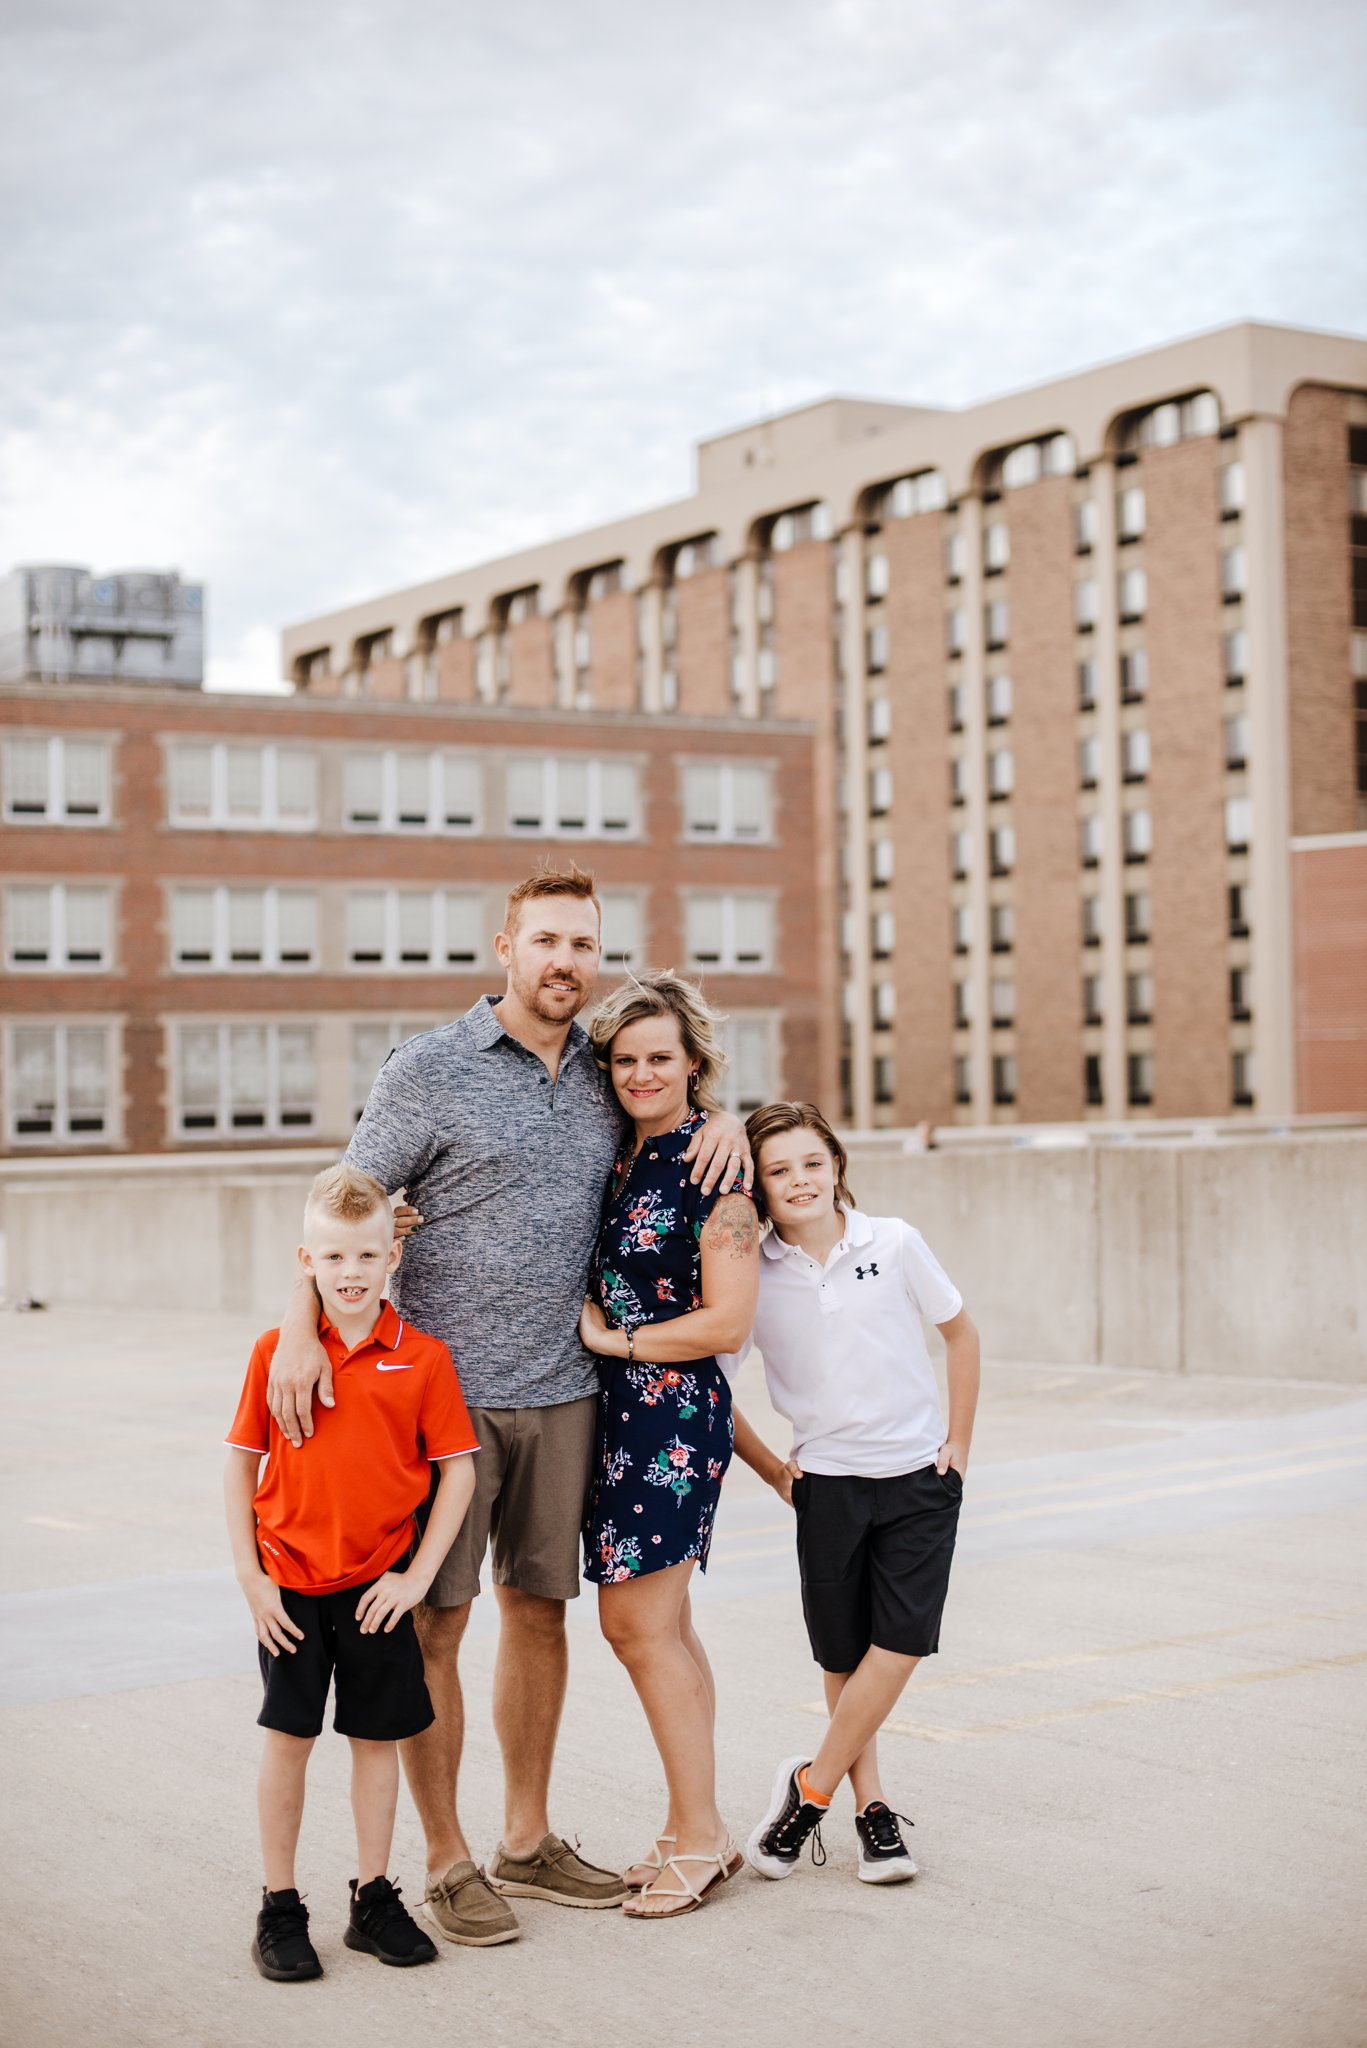 Parking Garage Family Photos